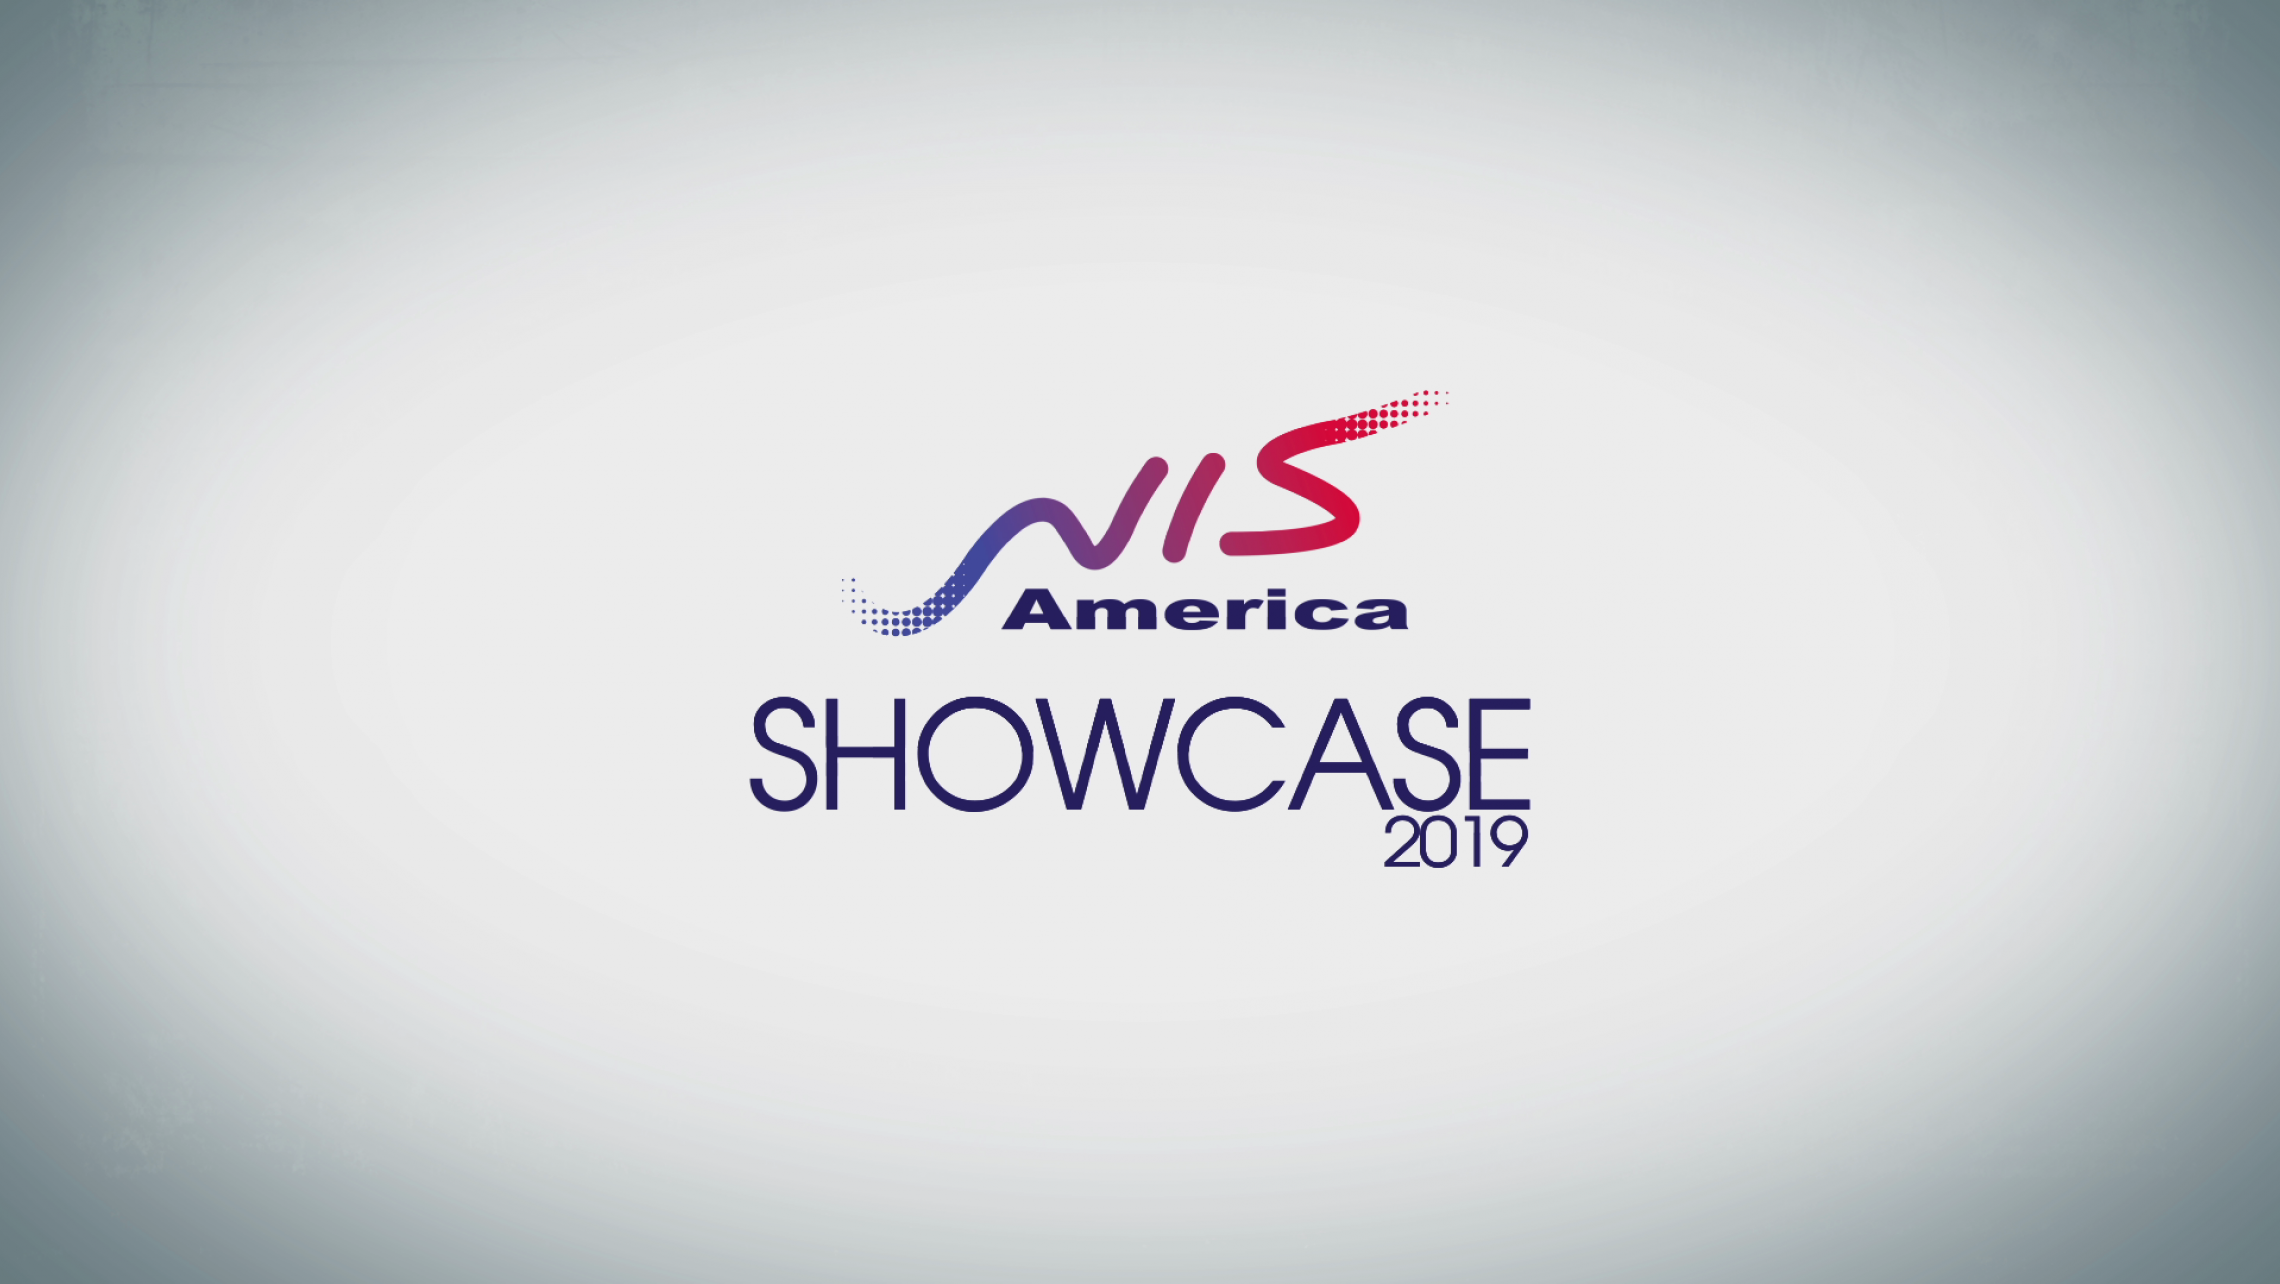 We're only three months into 2019 and we couldn't be more excited for  what's to come this year! Our NISA Showcase 2019 was full of new insights,  ...